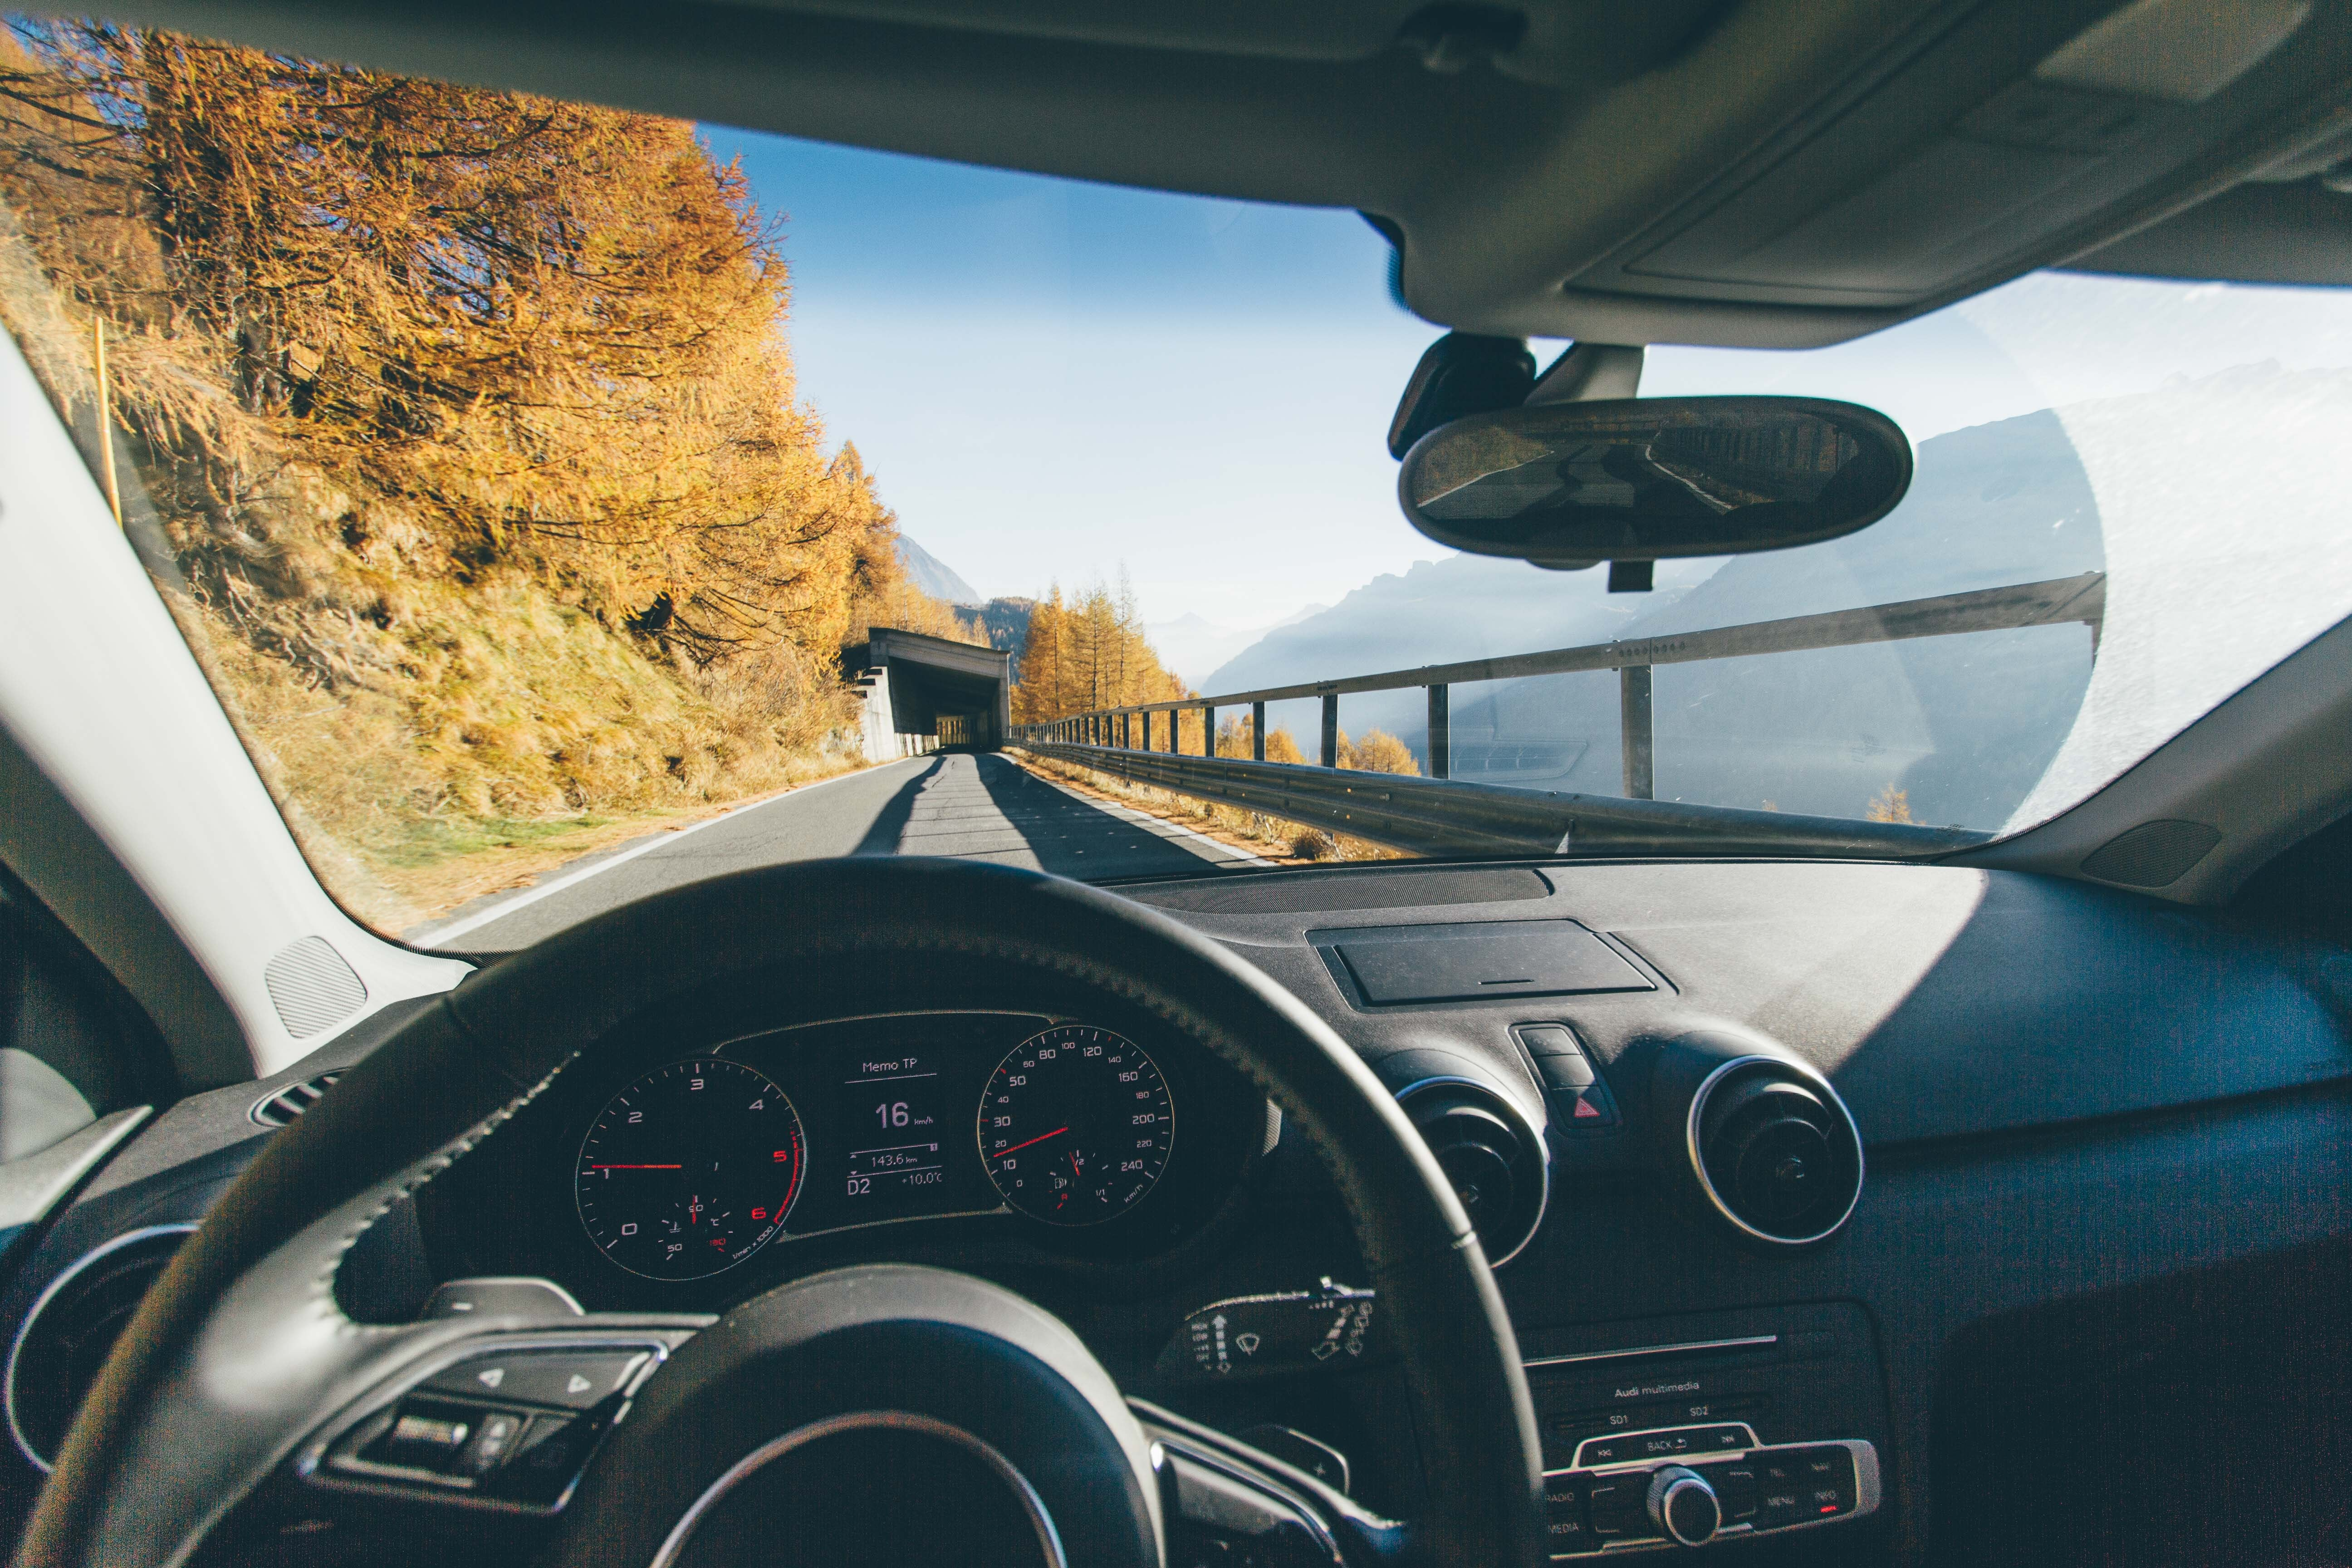 An image of a car steering wheel and dashboard, with picturesque views in the windscreen